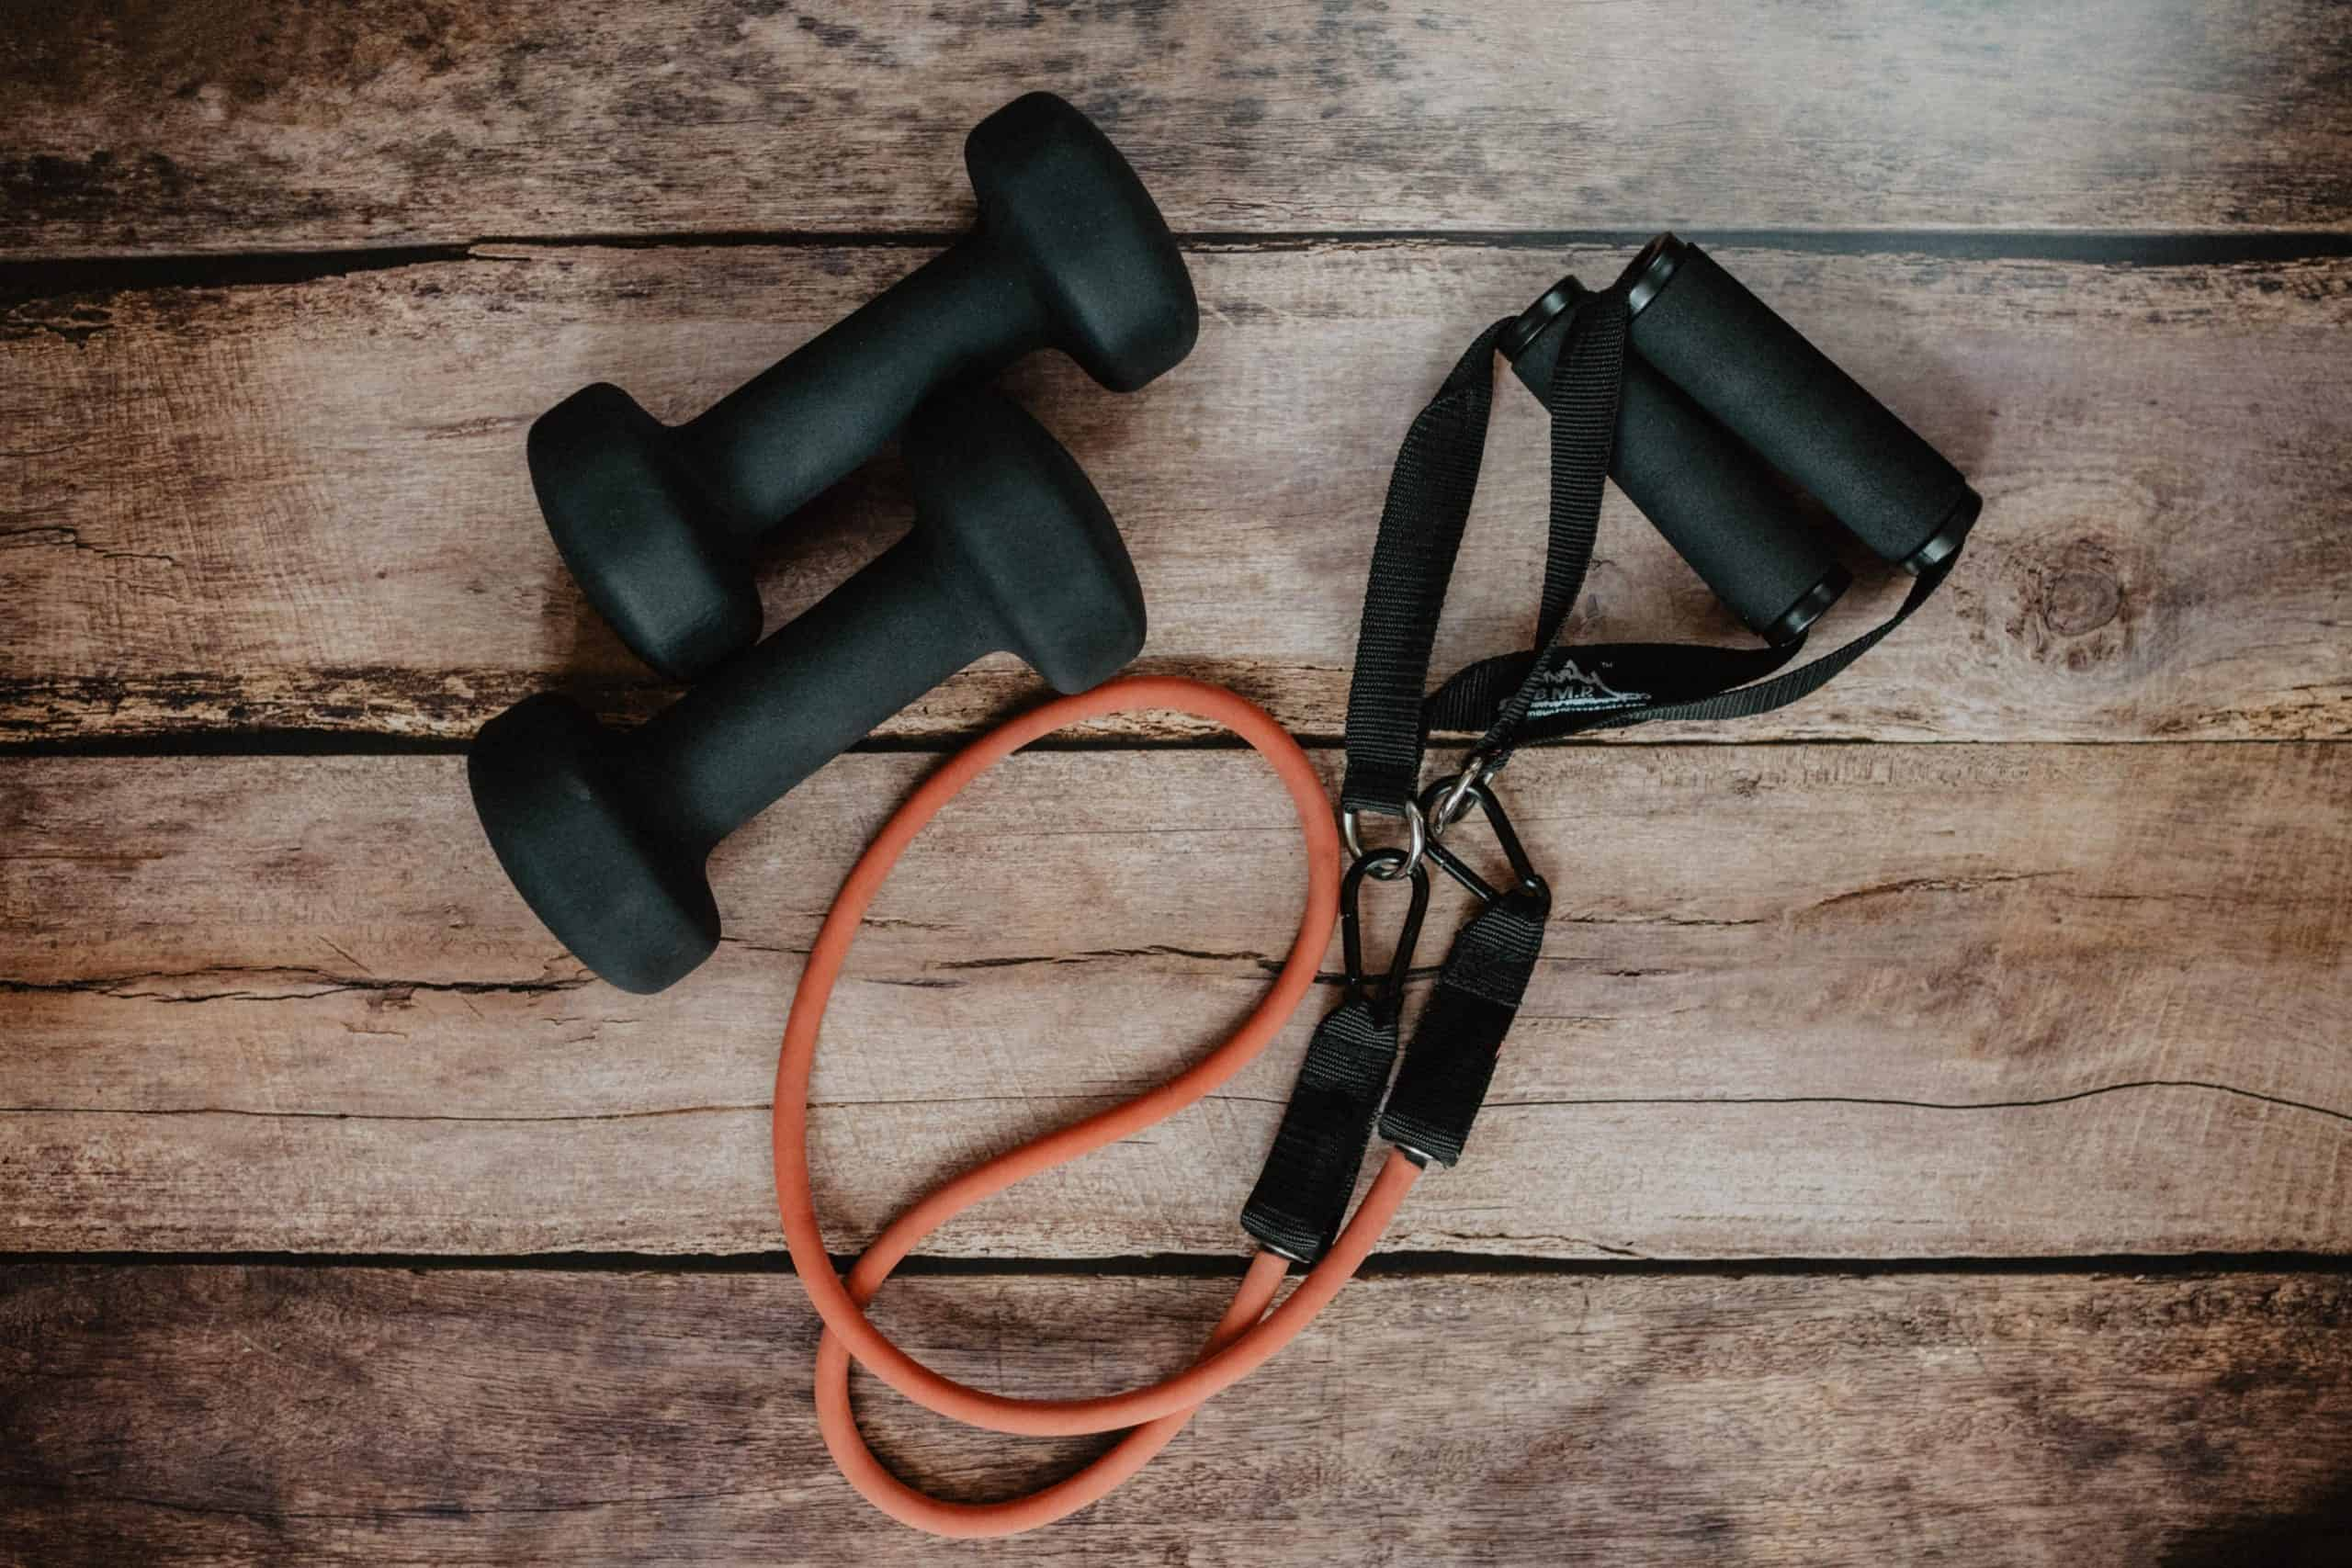 black hand weights and a resistance band against a wooden board background